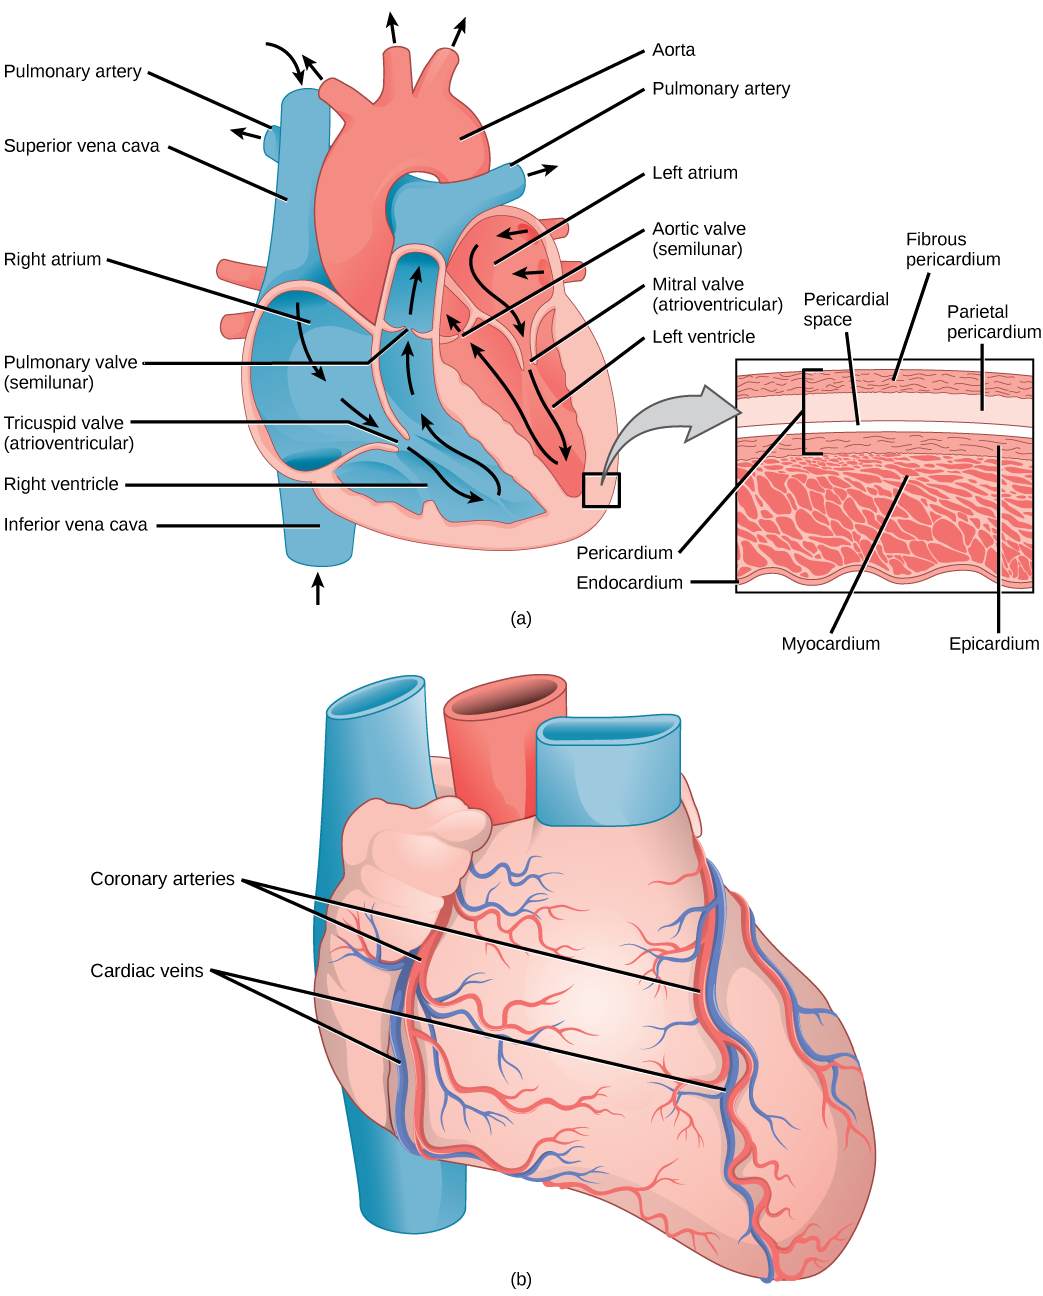 Illustration A shows the parts of the heart. Blood enters the right atrium through an upper, superior vena cava and a lower, inferior vena cava. From the right atrium, blood flows through the funnel-shaped tricuspid valve into the right ventricle. Blood then travels up and through the pulmonary valve into the pulmonary artery. Blood re-enters the heart through the pulmonary veins, and travels down from the left atrium, through the mitral valve, into the right ventricle. Blood then travels up through the a